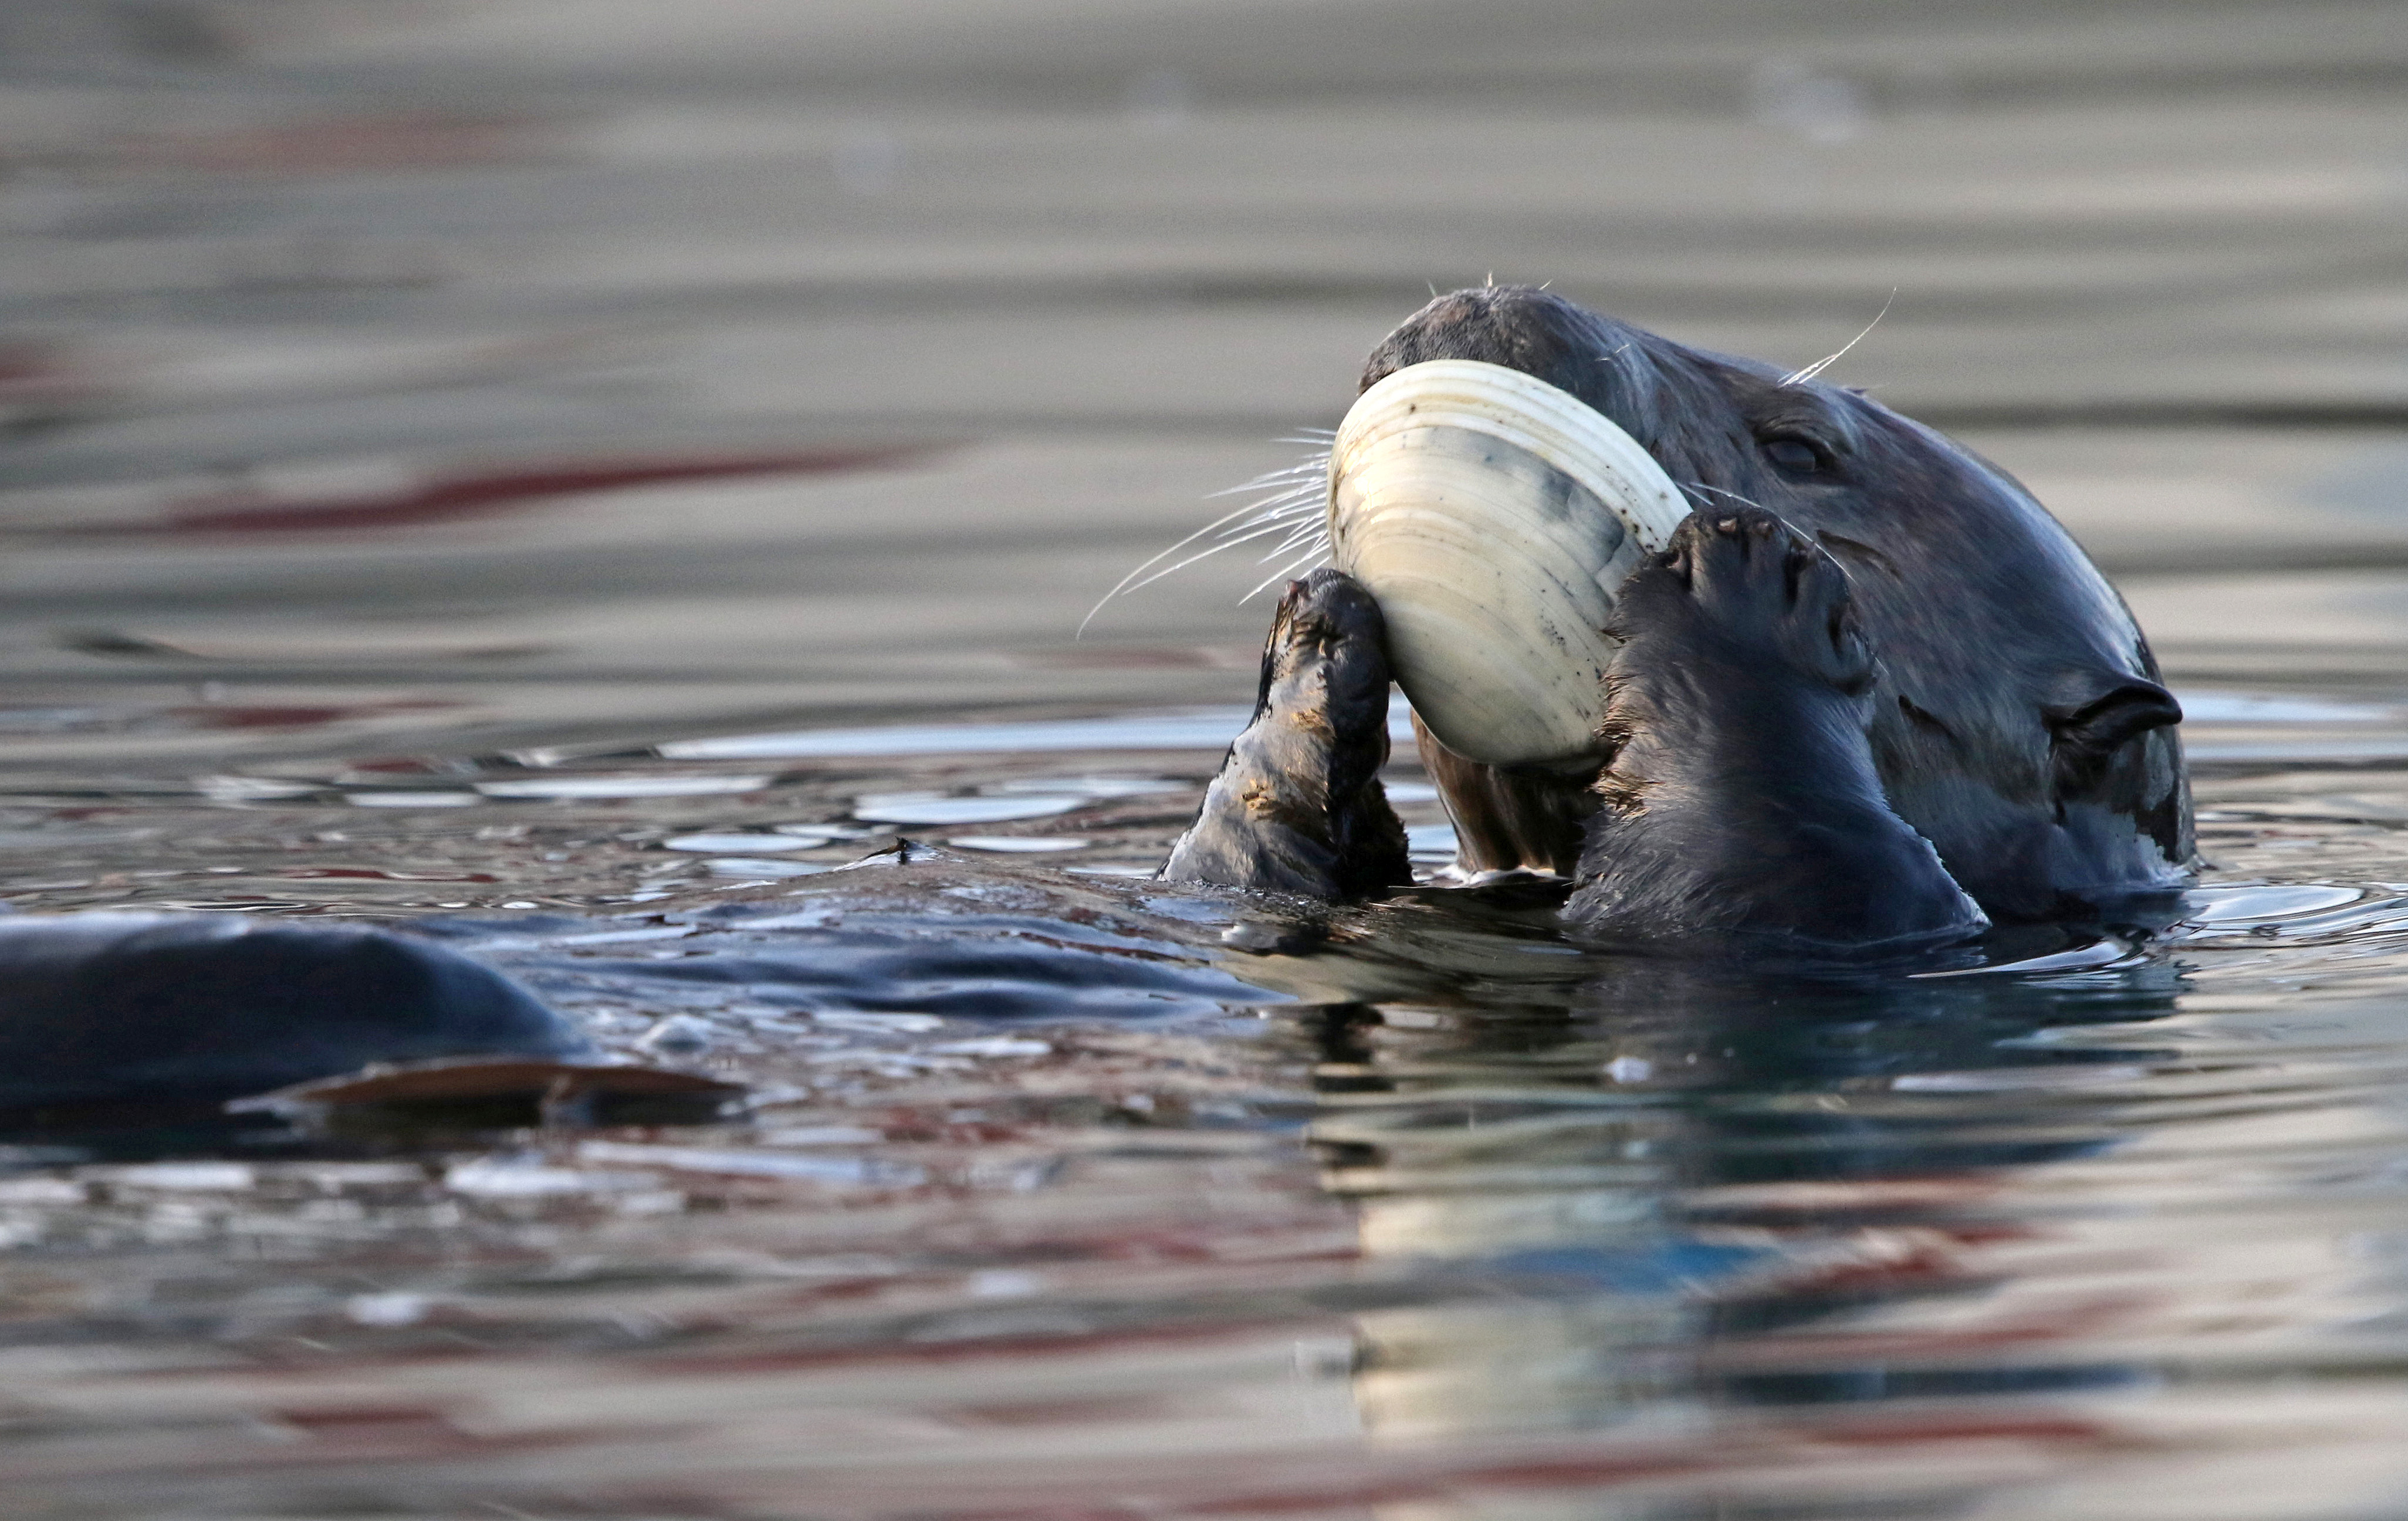 A sea otter eating a giant clam